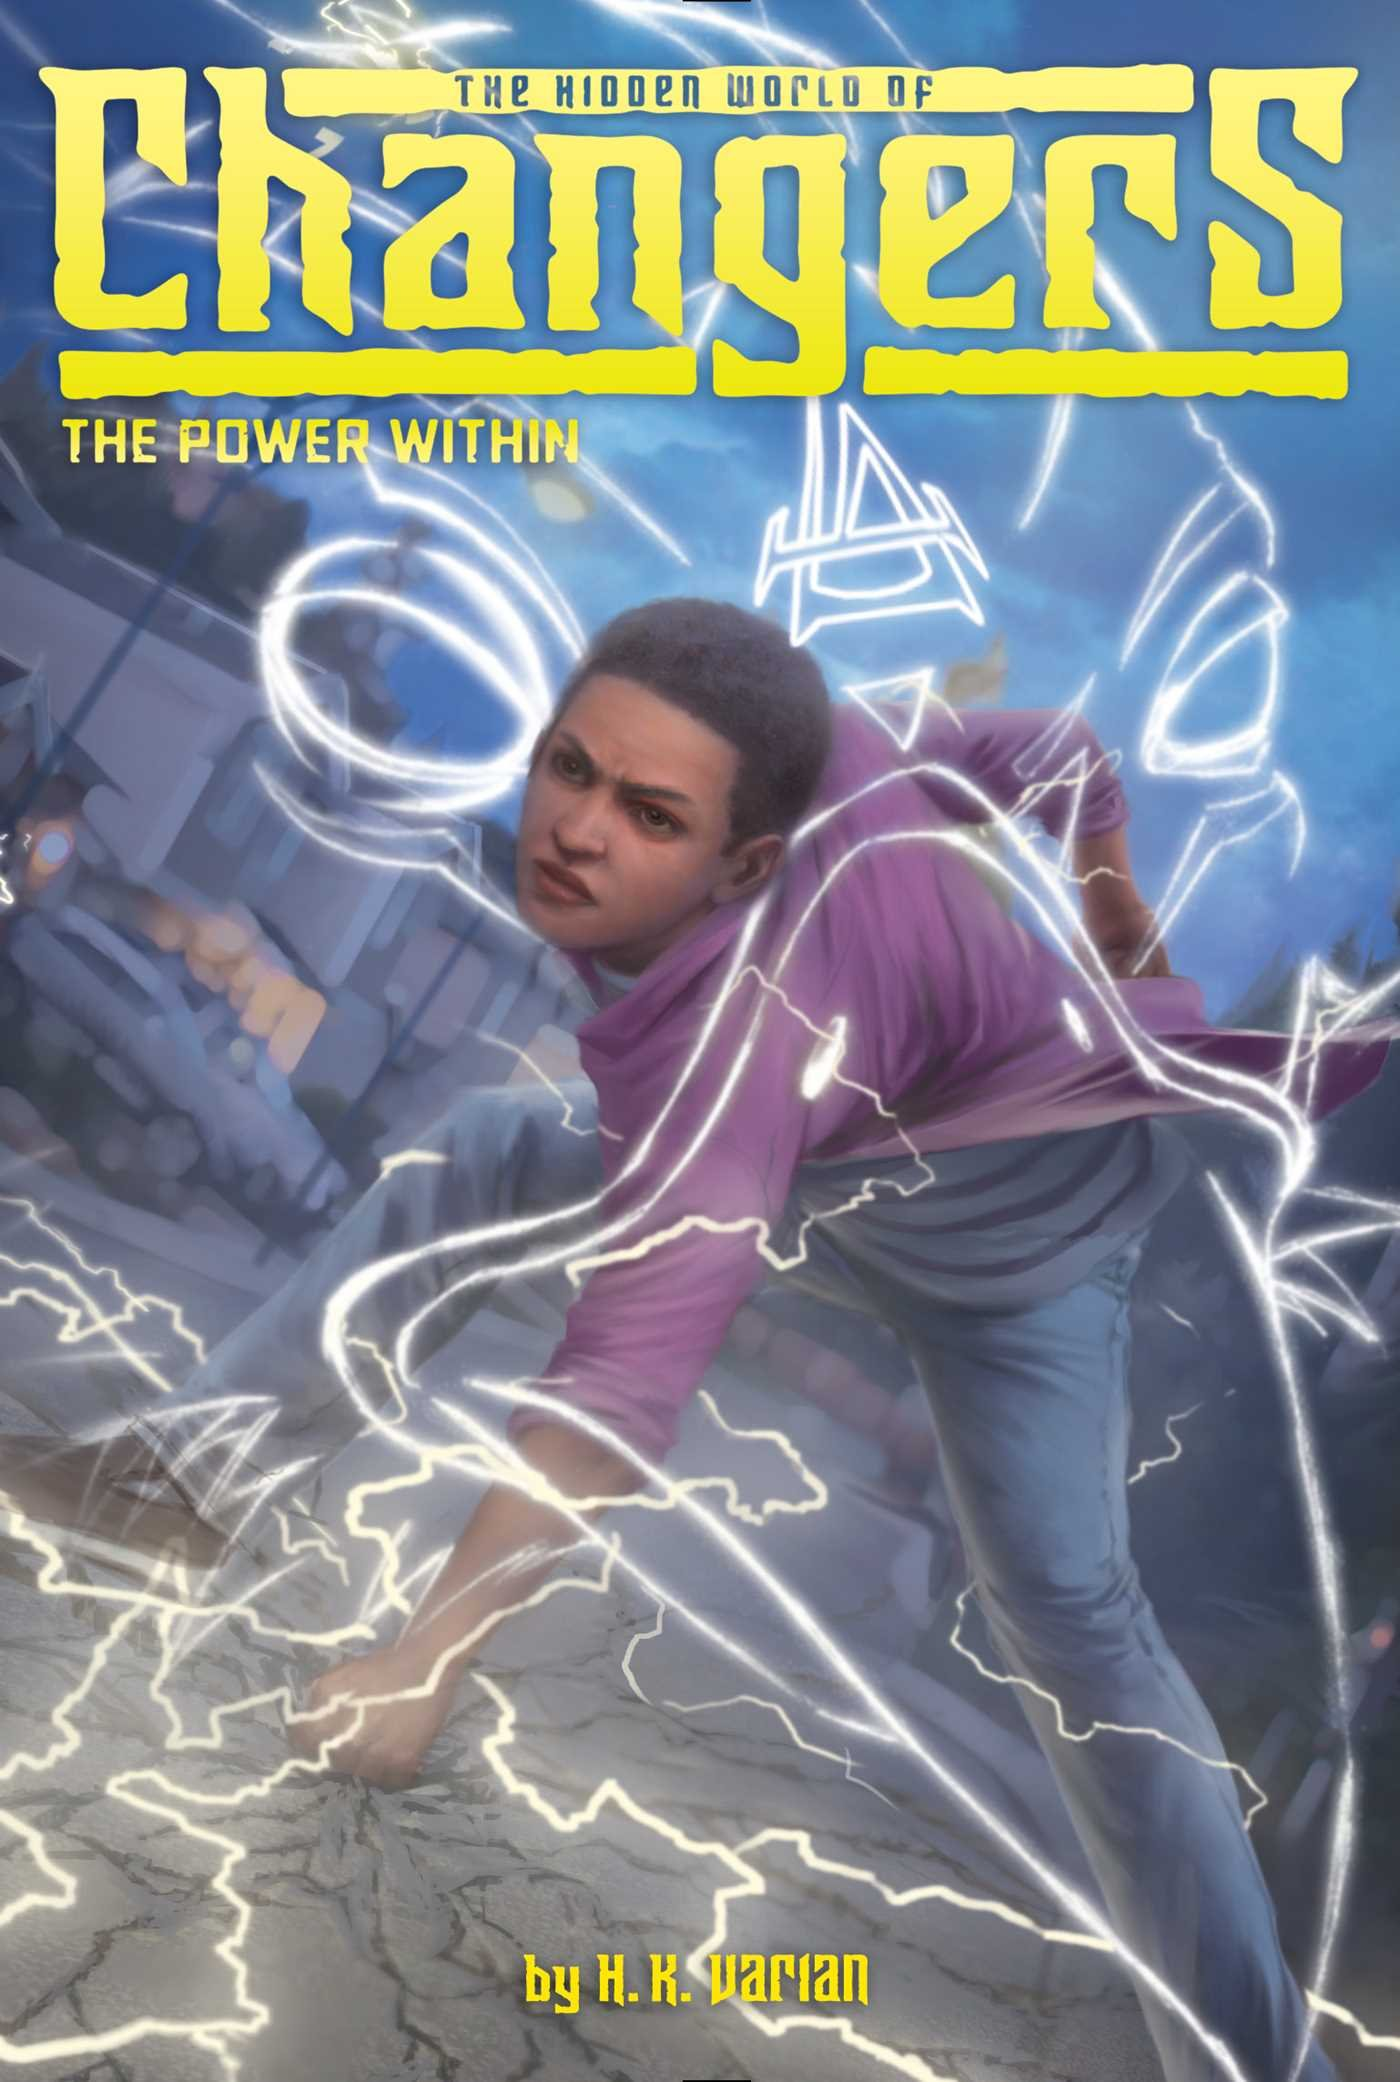 The Power Within (The Hidden World of Changers)